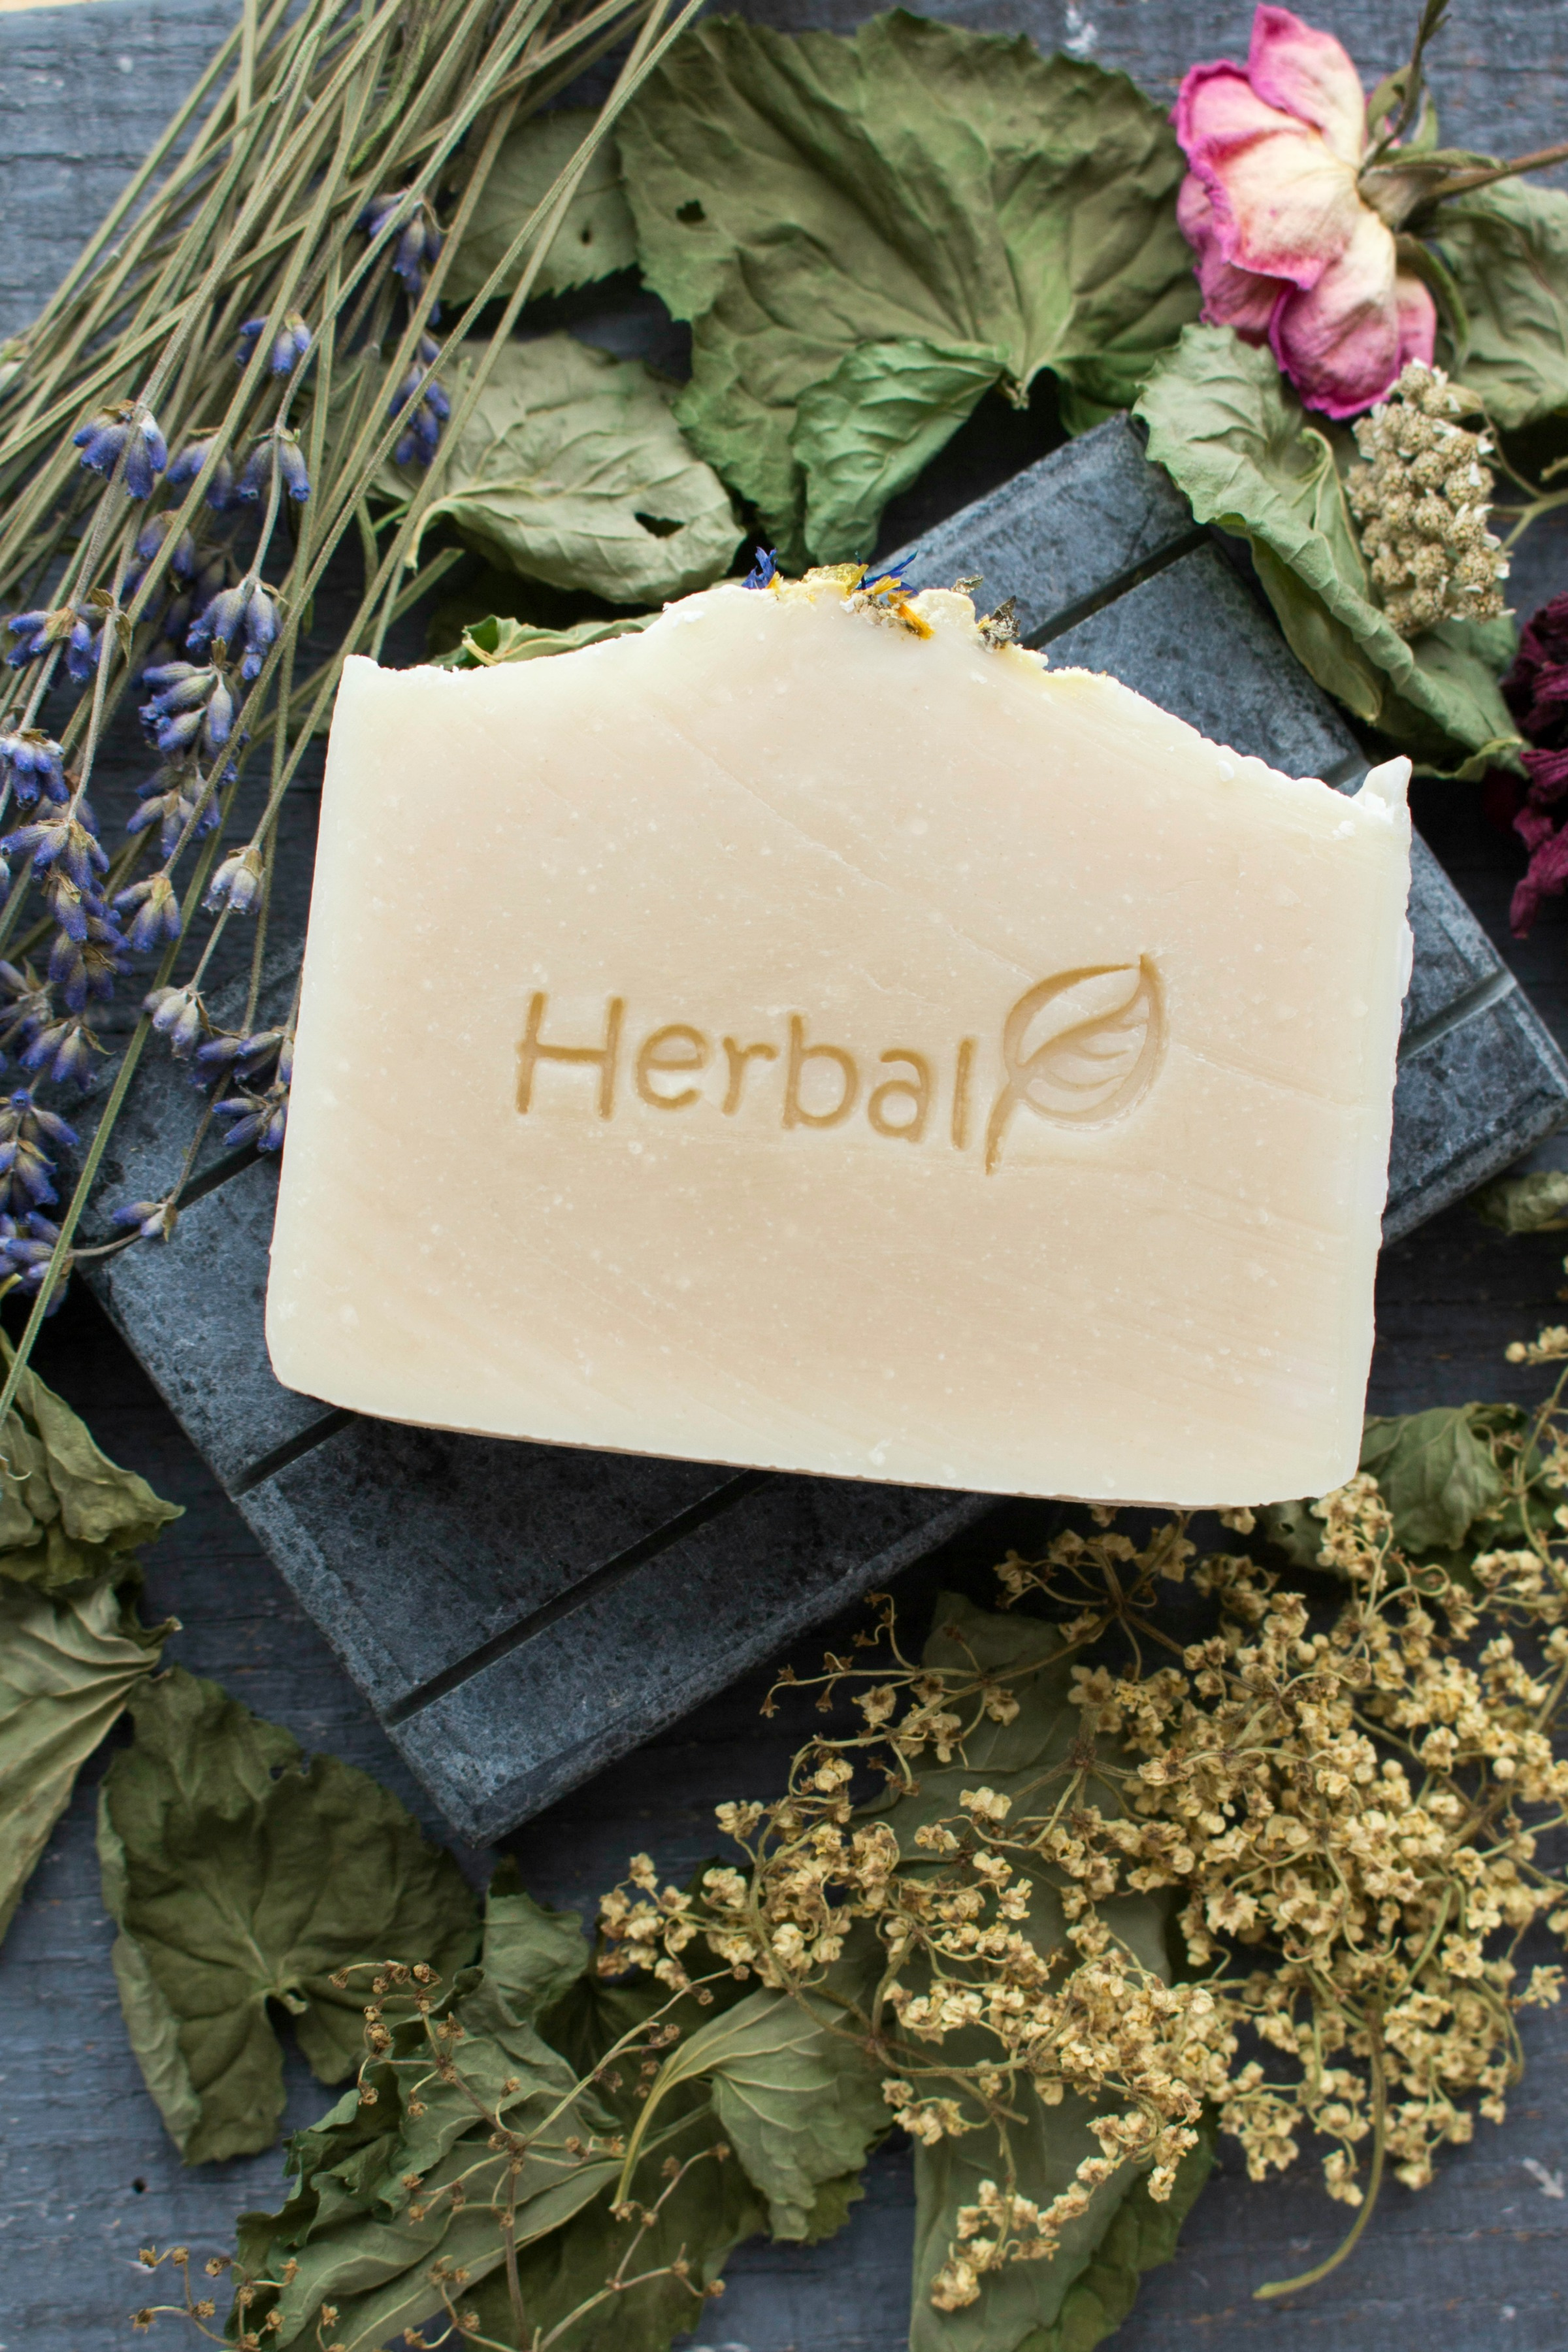 Bar of homemade herbal soap laying on a pile of dried herbs, leaves, flowers